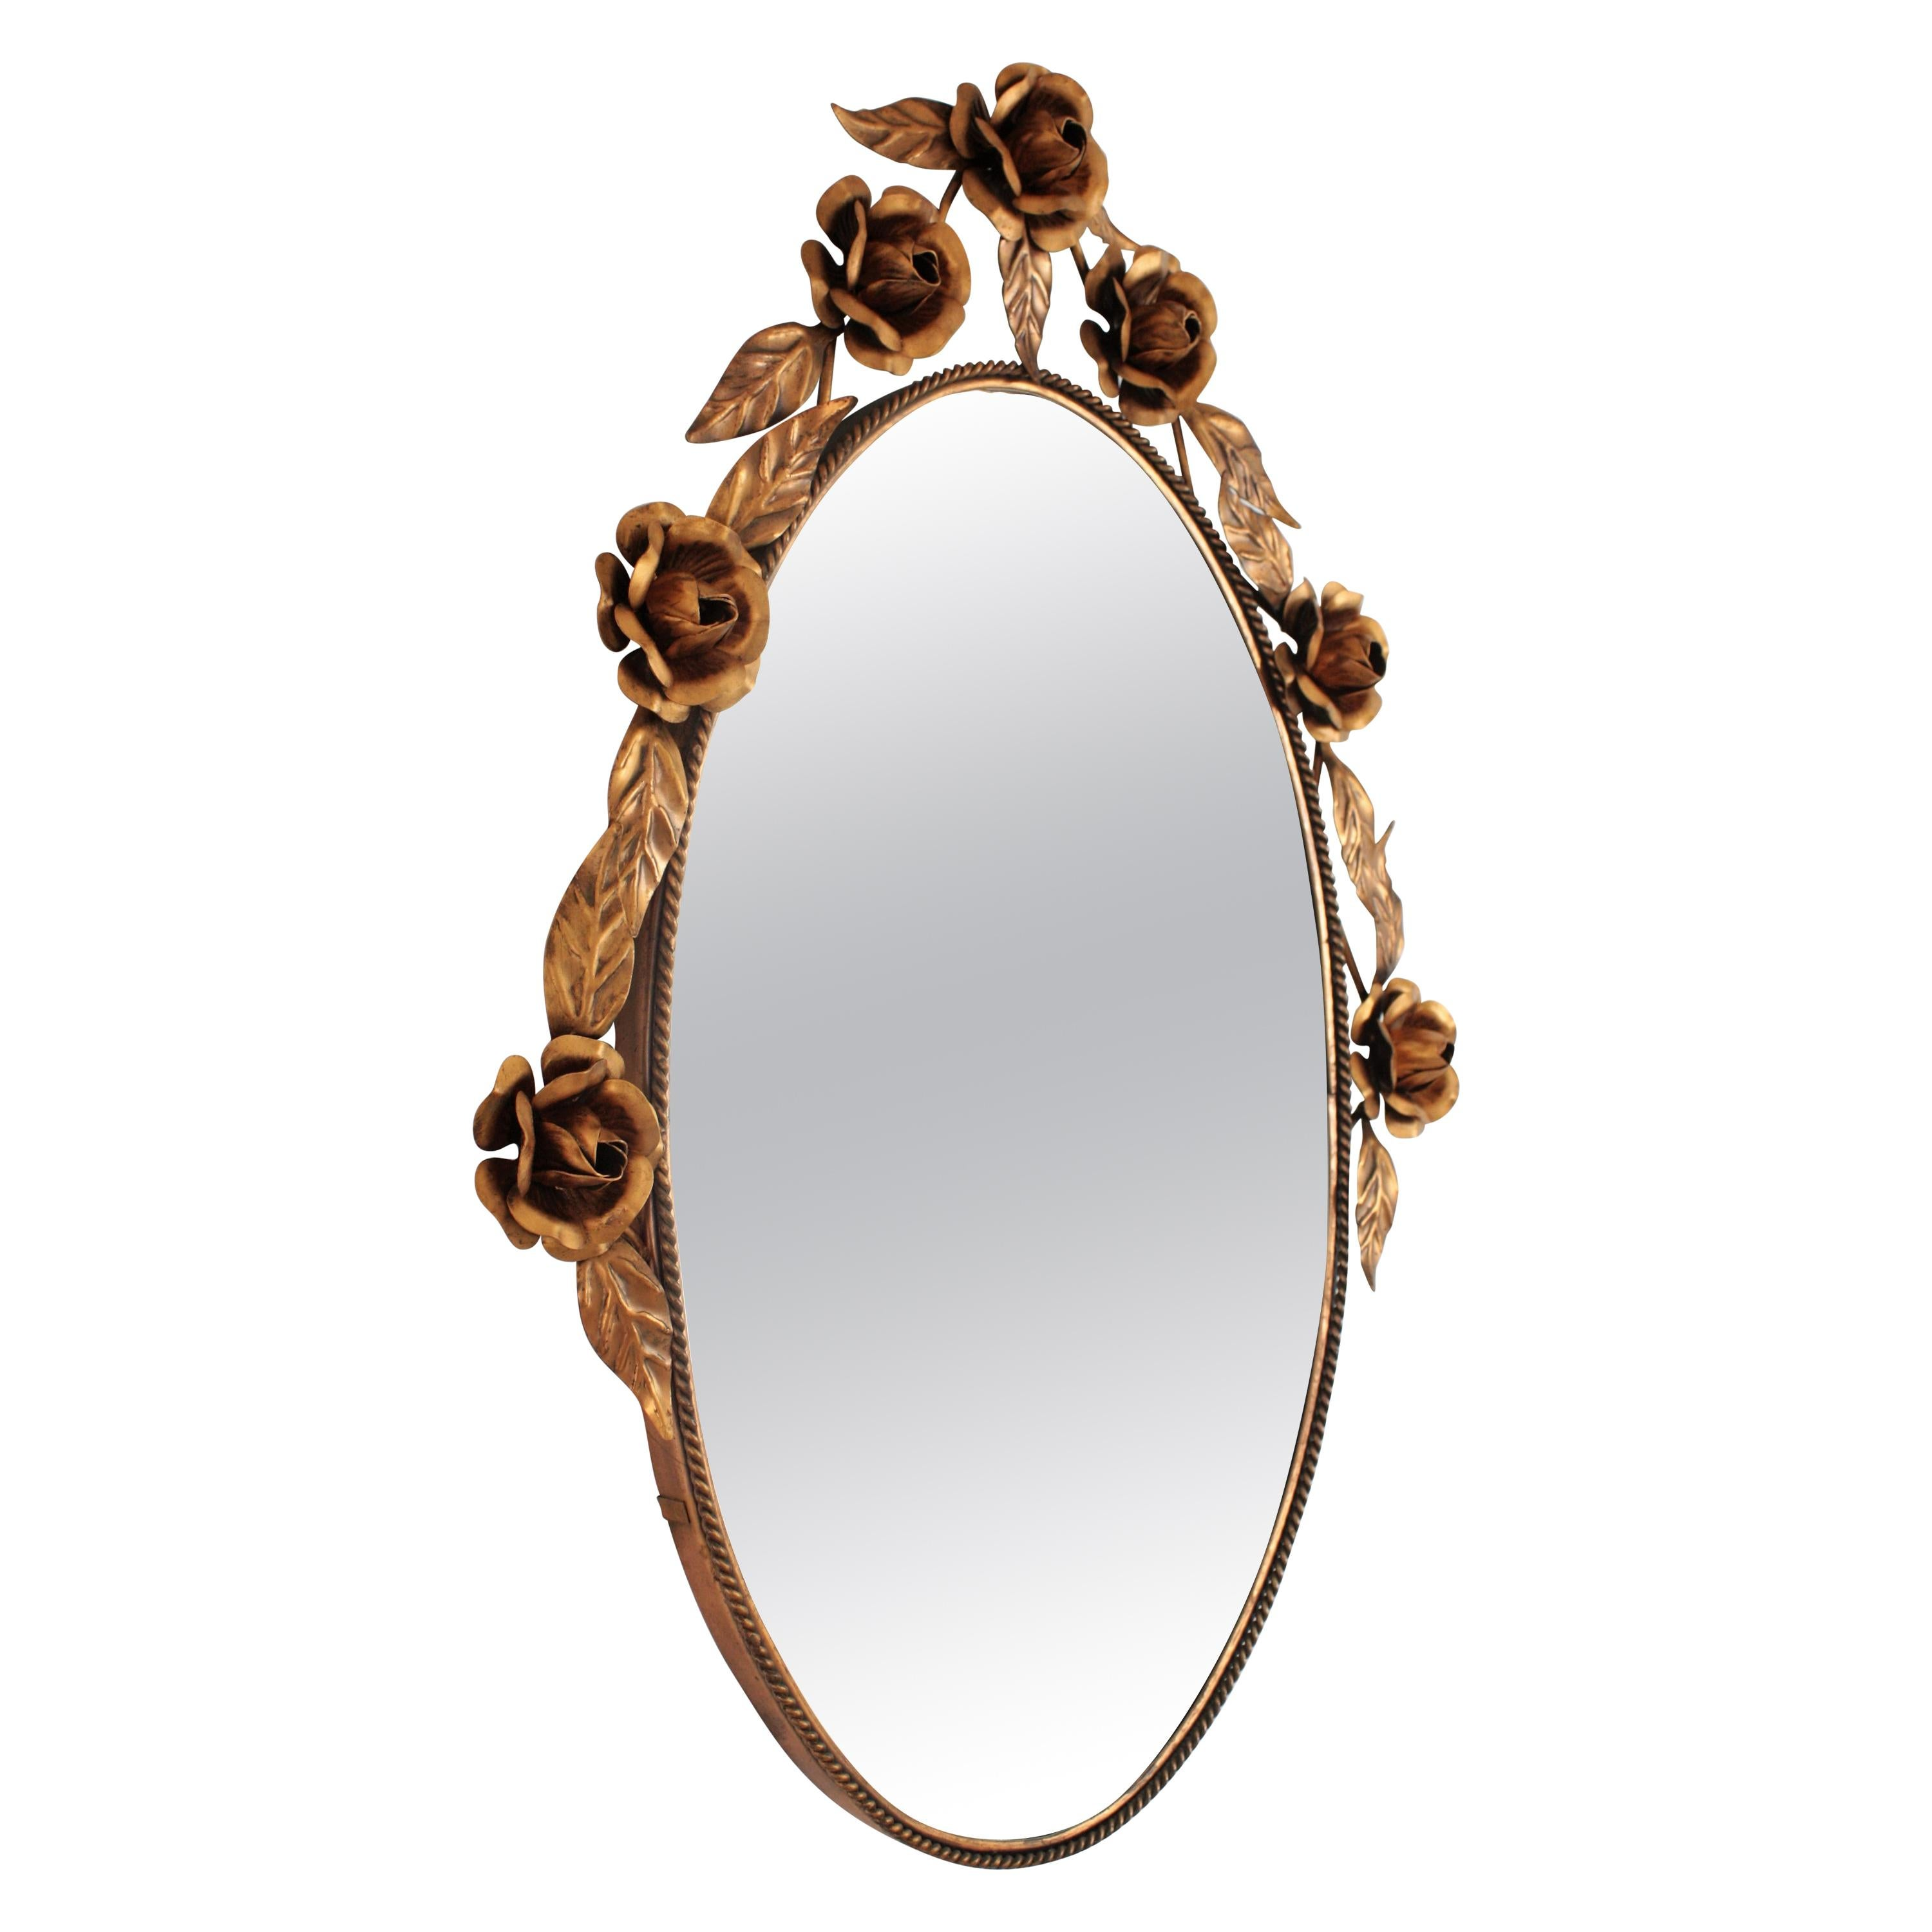 Coppered Metal Floral Oval Mirror, Spain, 1960s